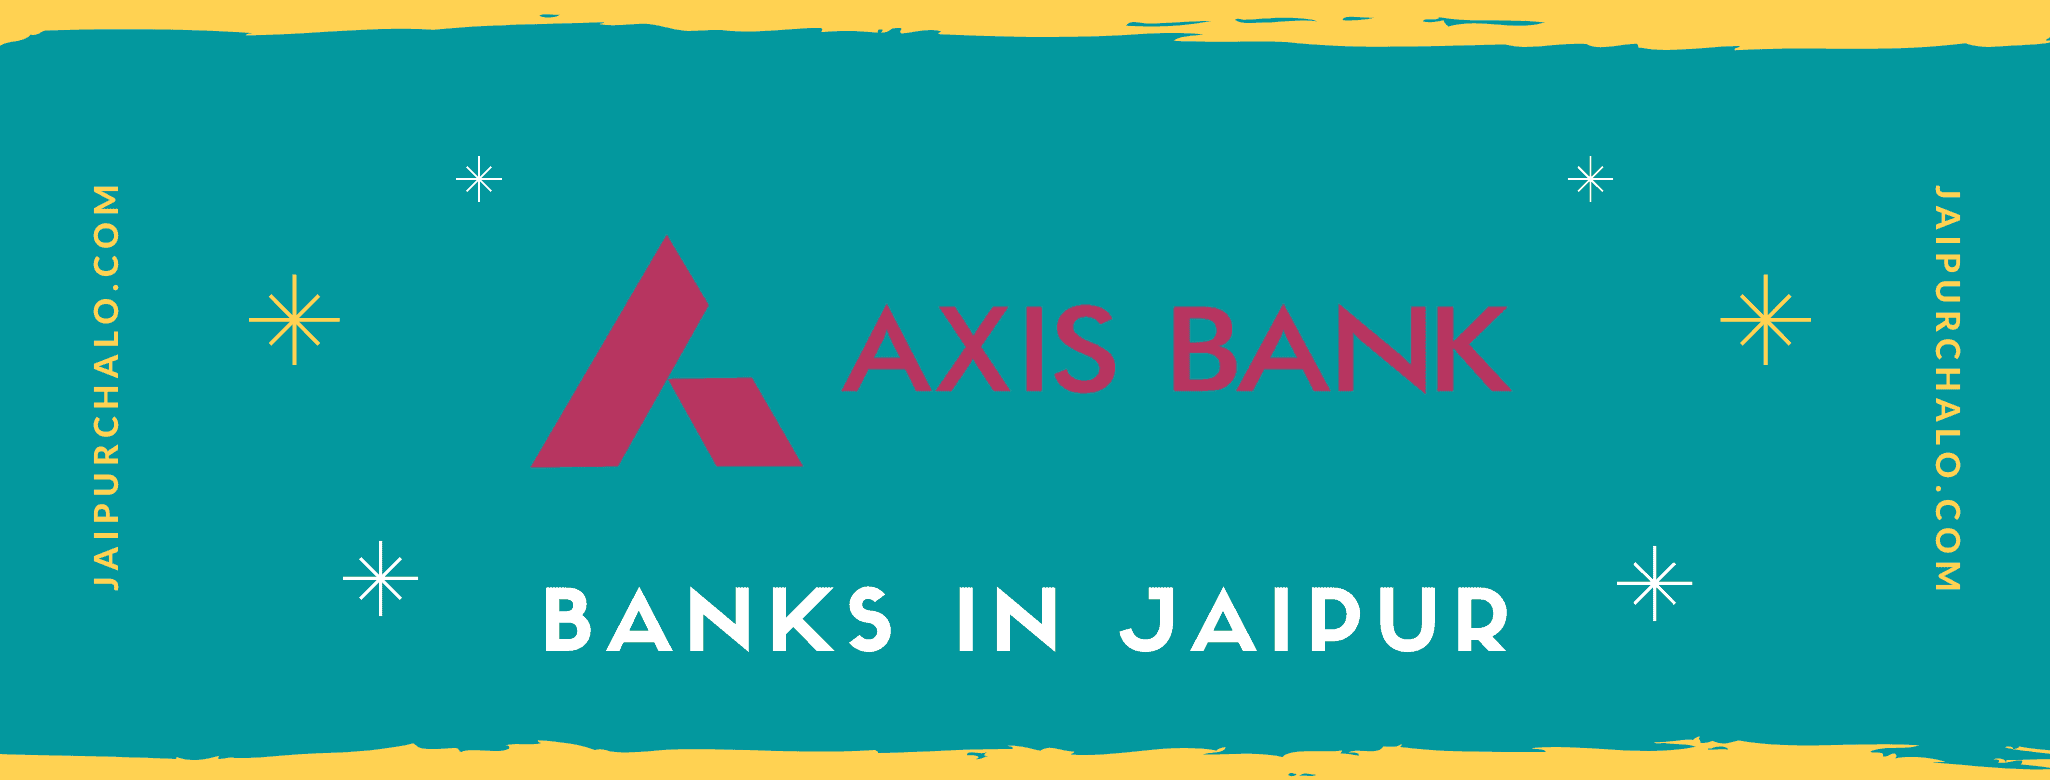 Axis Bank bank in jaipur